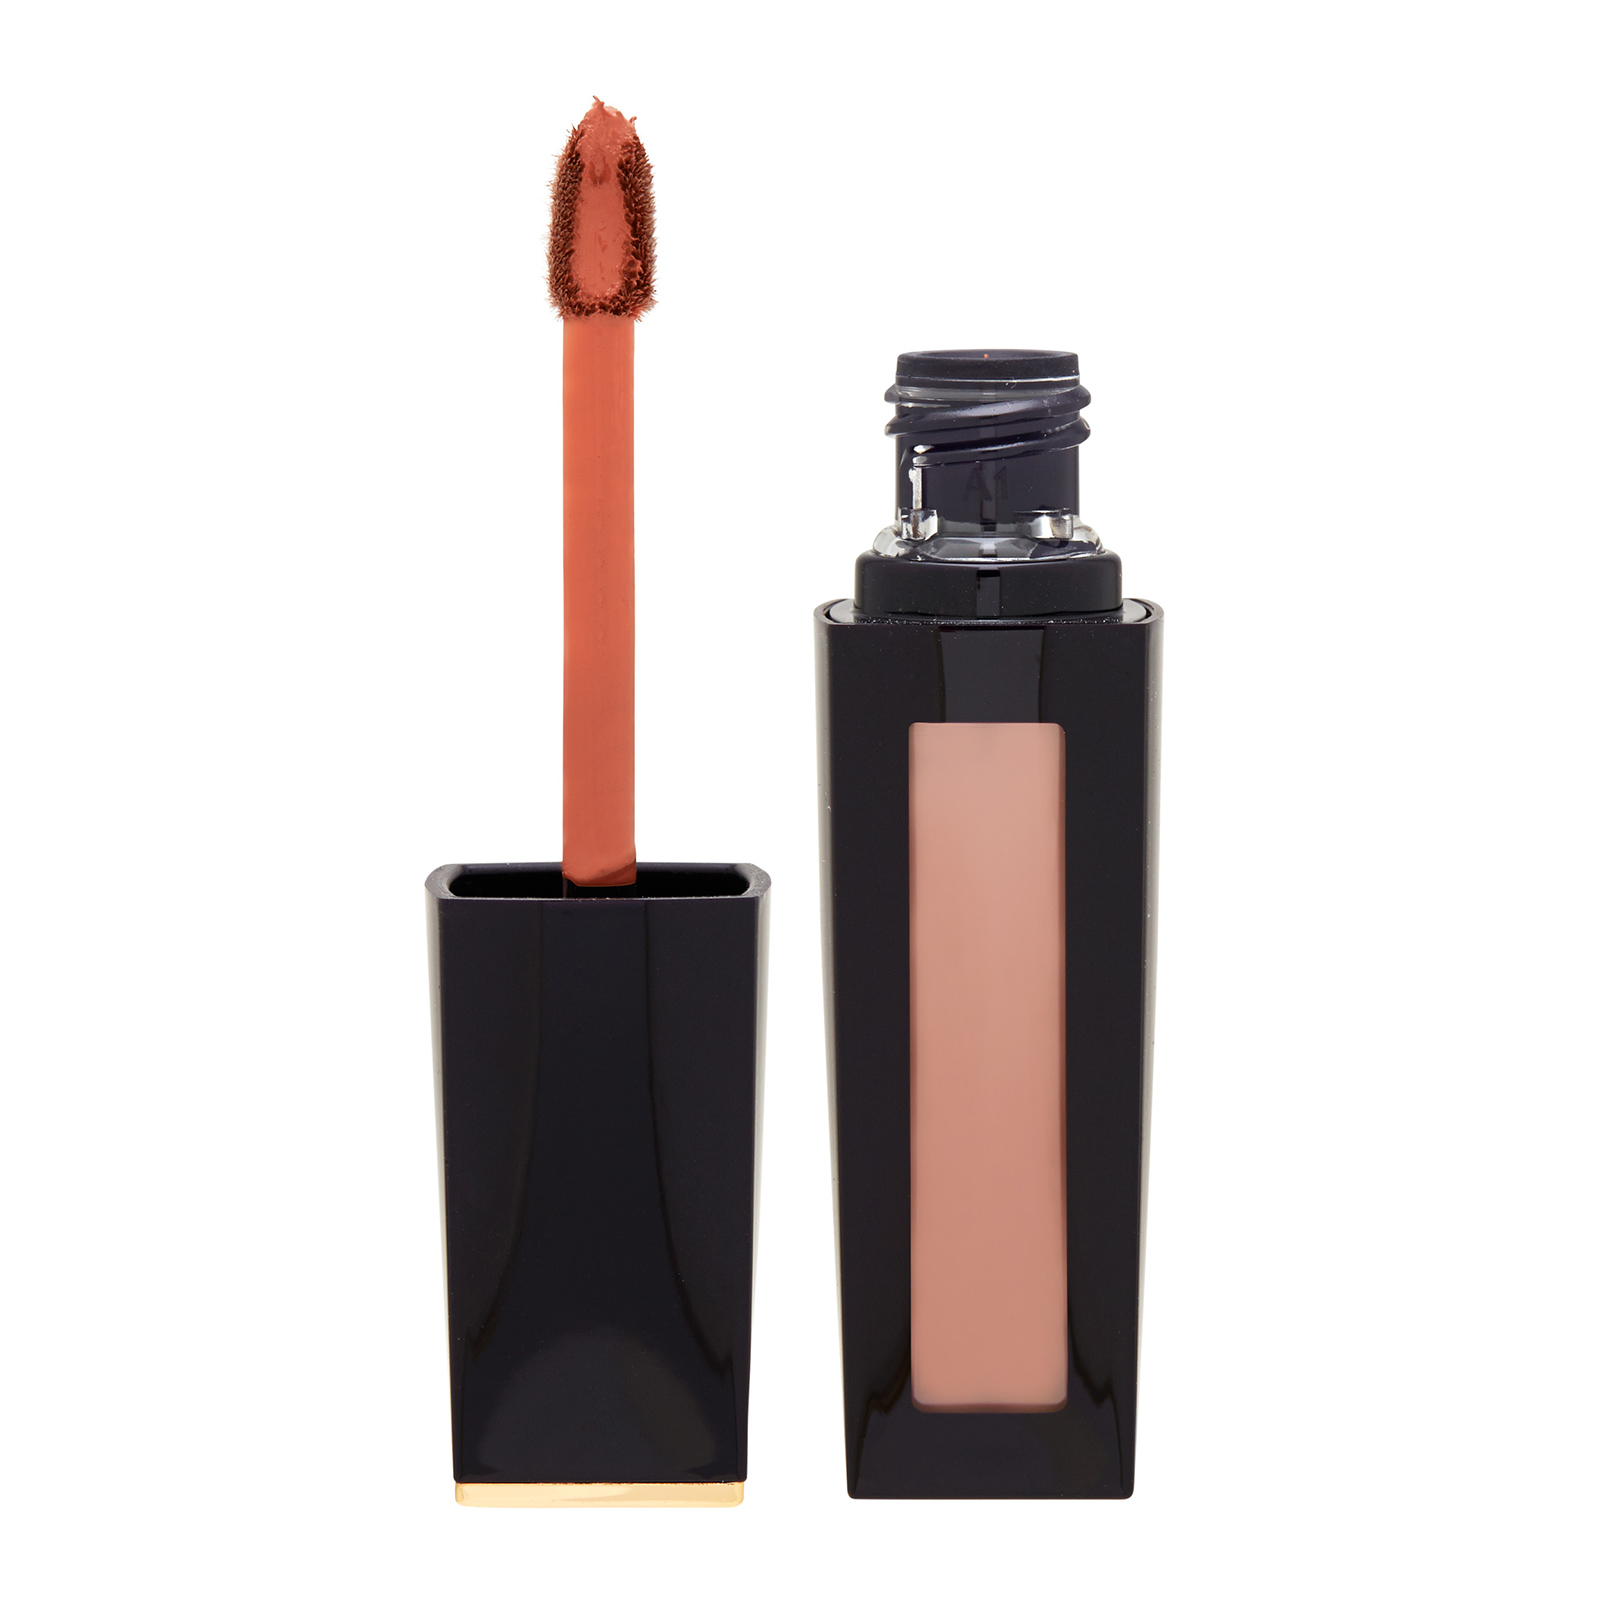 Estée Lauder Pure Color Envy  Liquid Lip Potion 110 Naked Ambition, 0.24oz, 7ml (All Products)